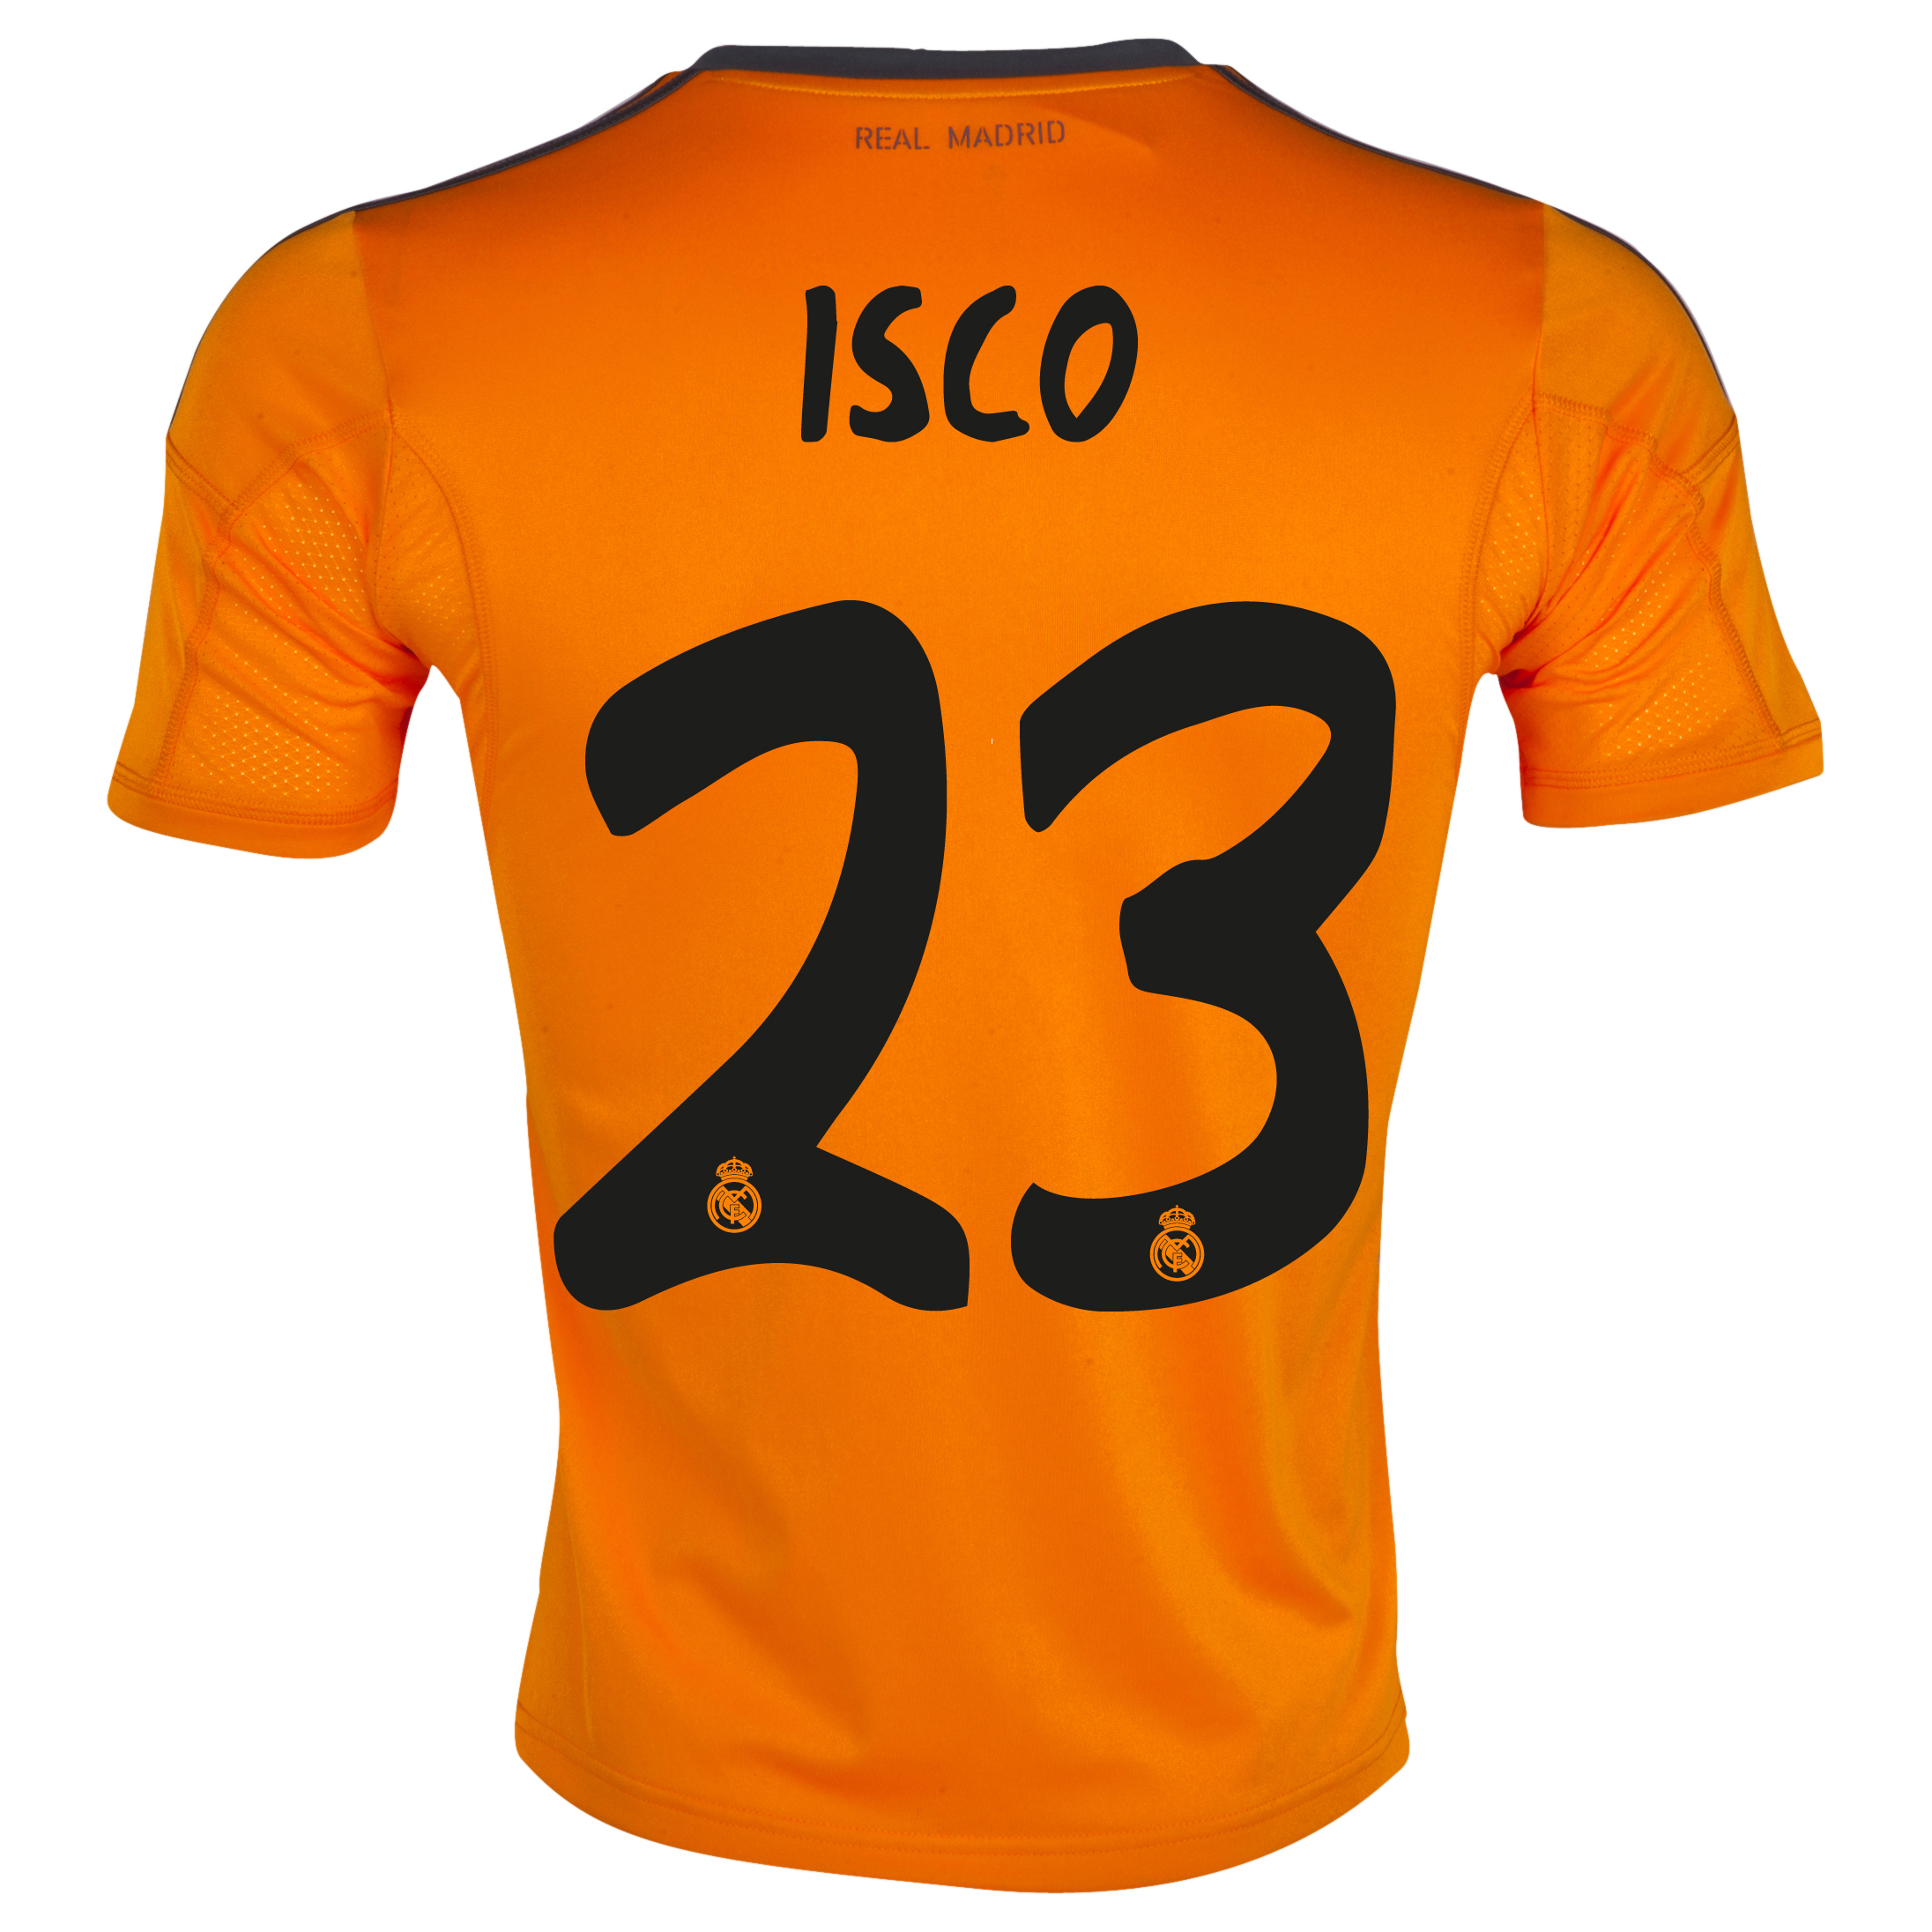 Real Madrid Third Shirt 2013/14 with Isco 23 printing